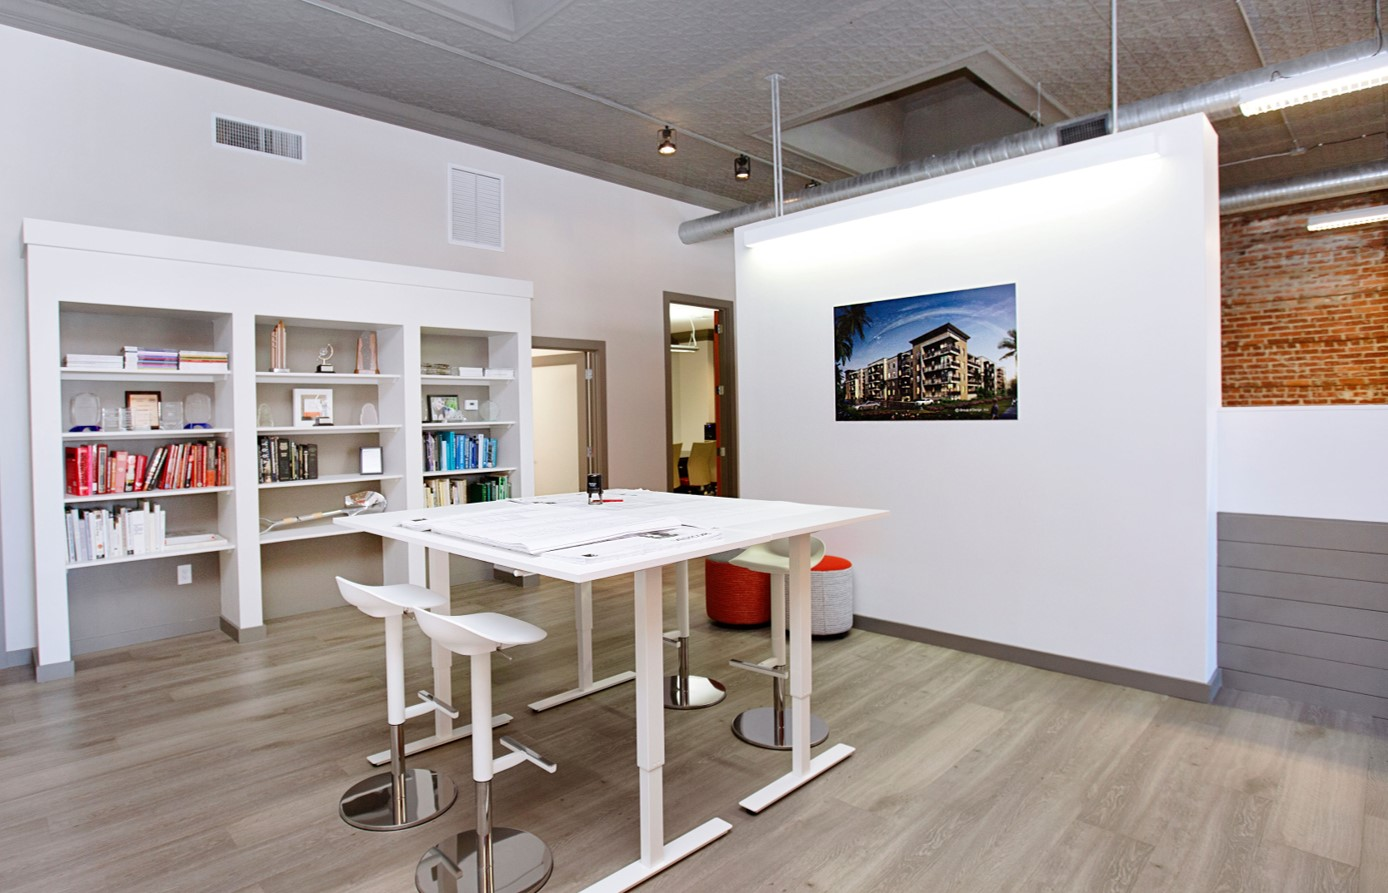 Design office with table